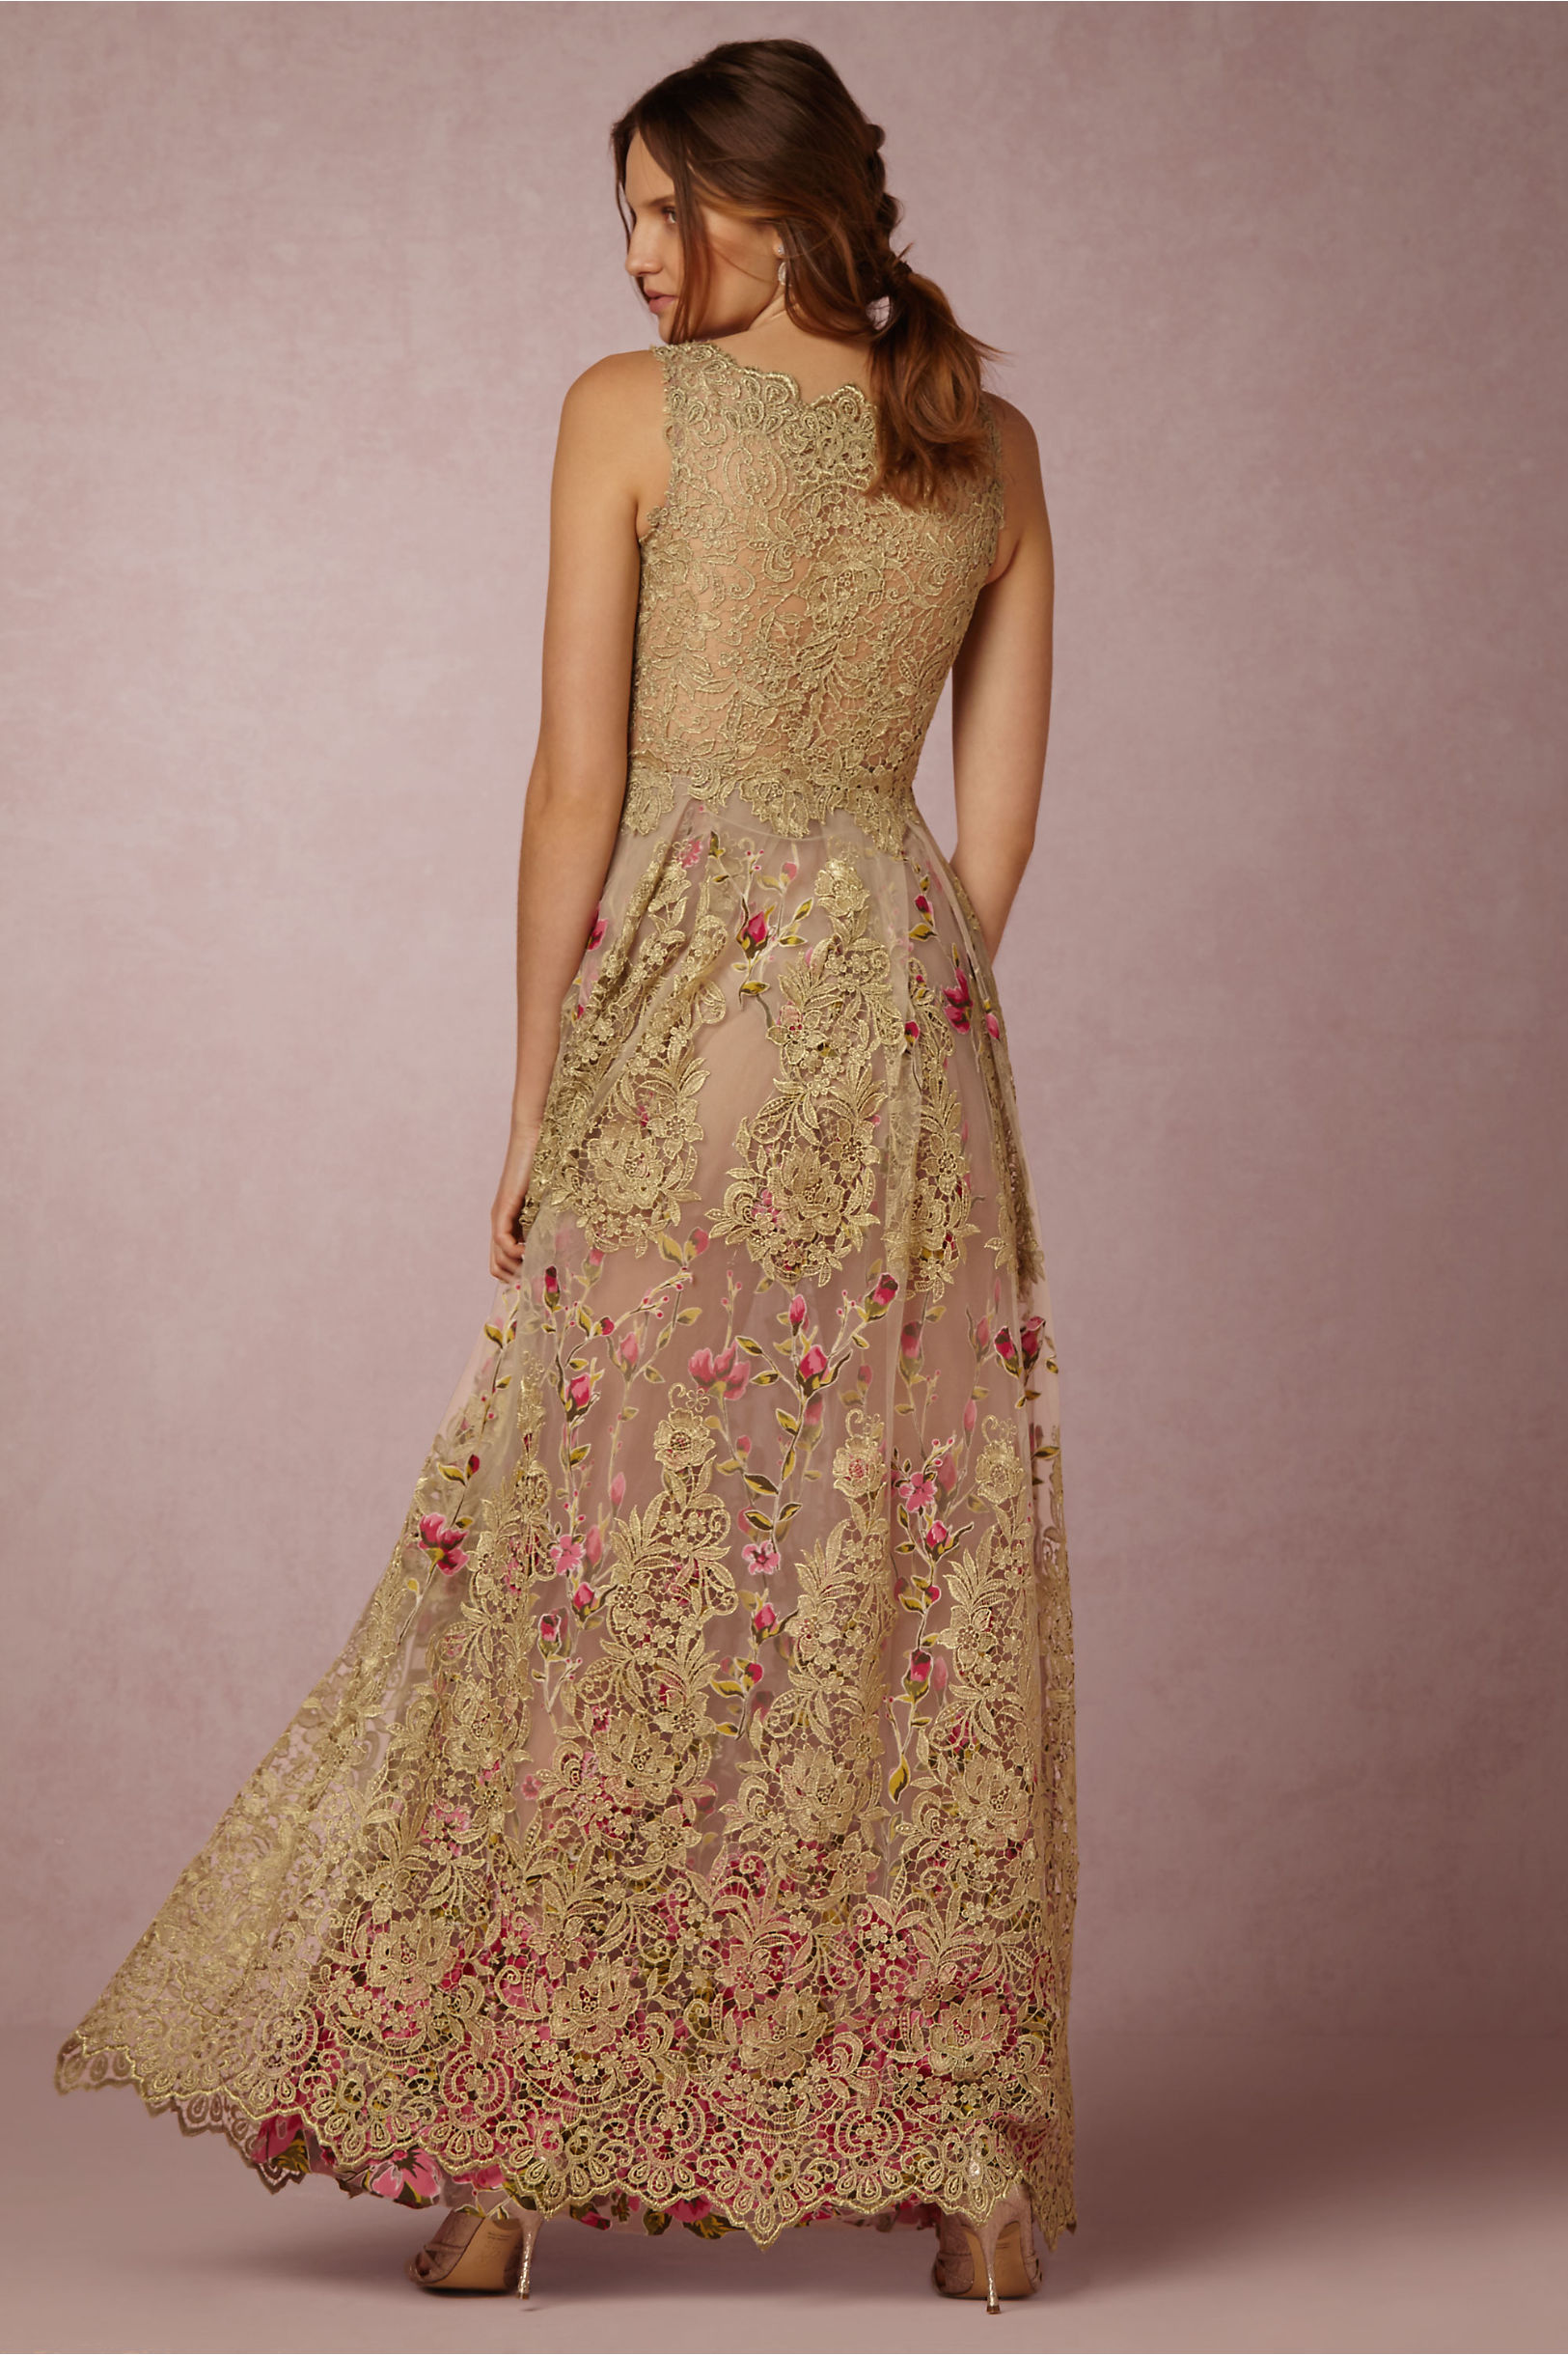 Fable Gown in Bride | BHLDN